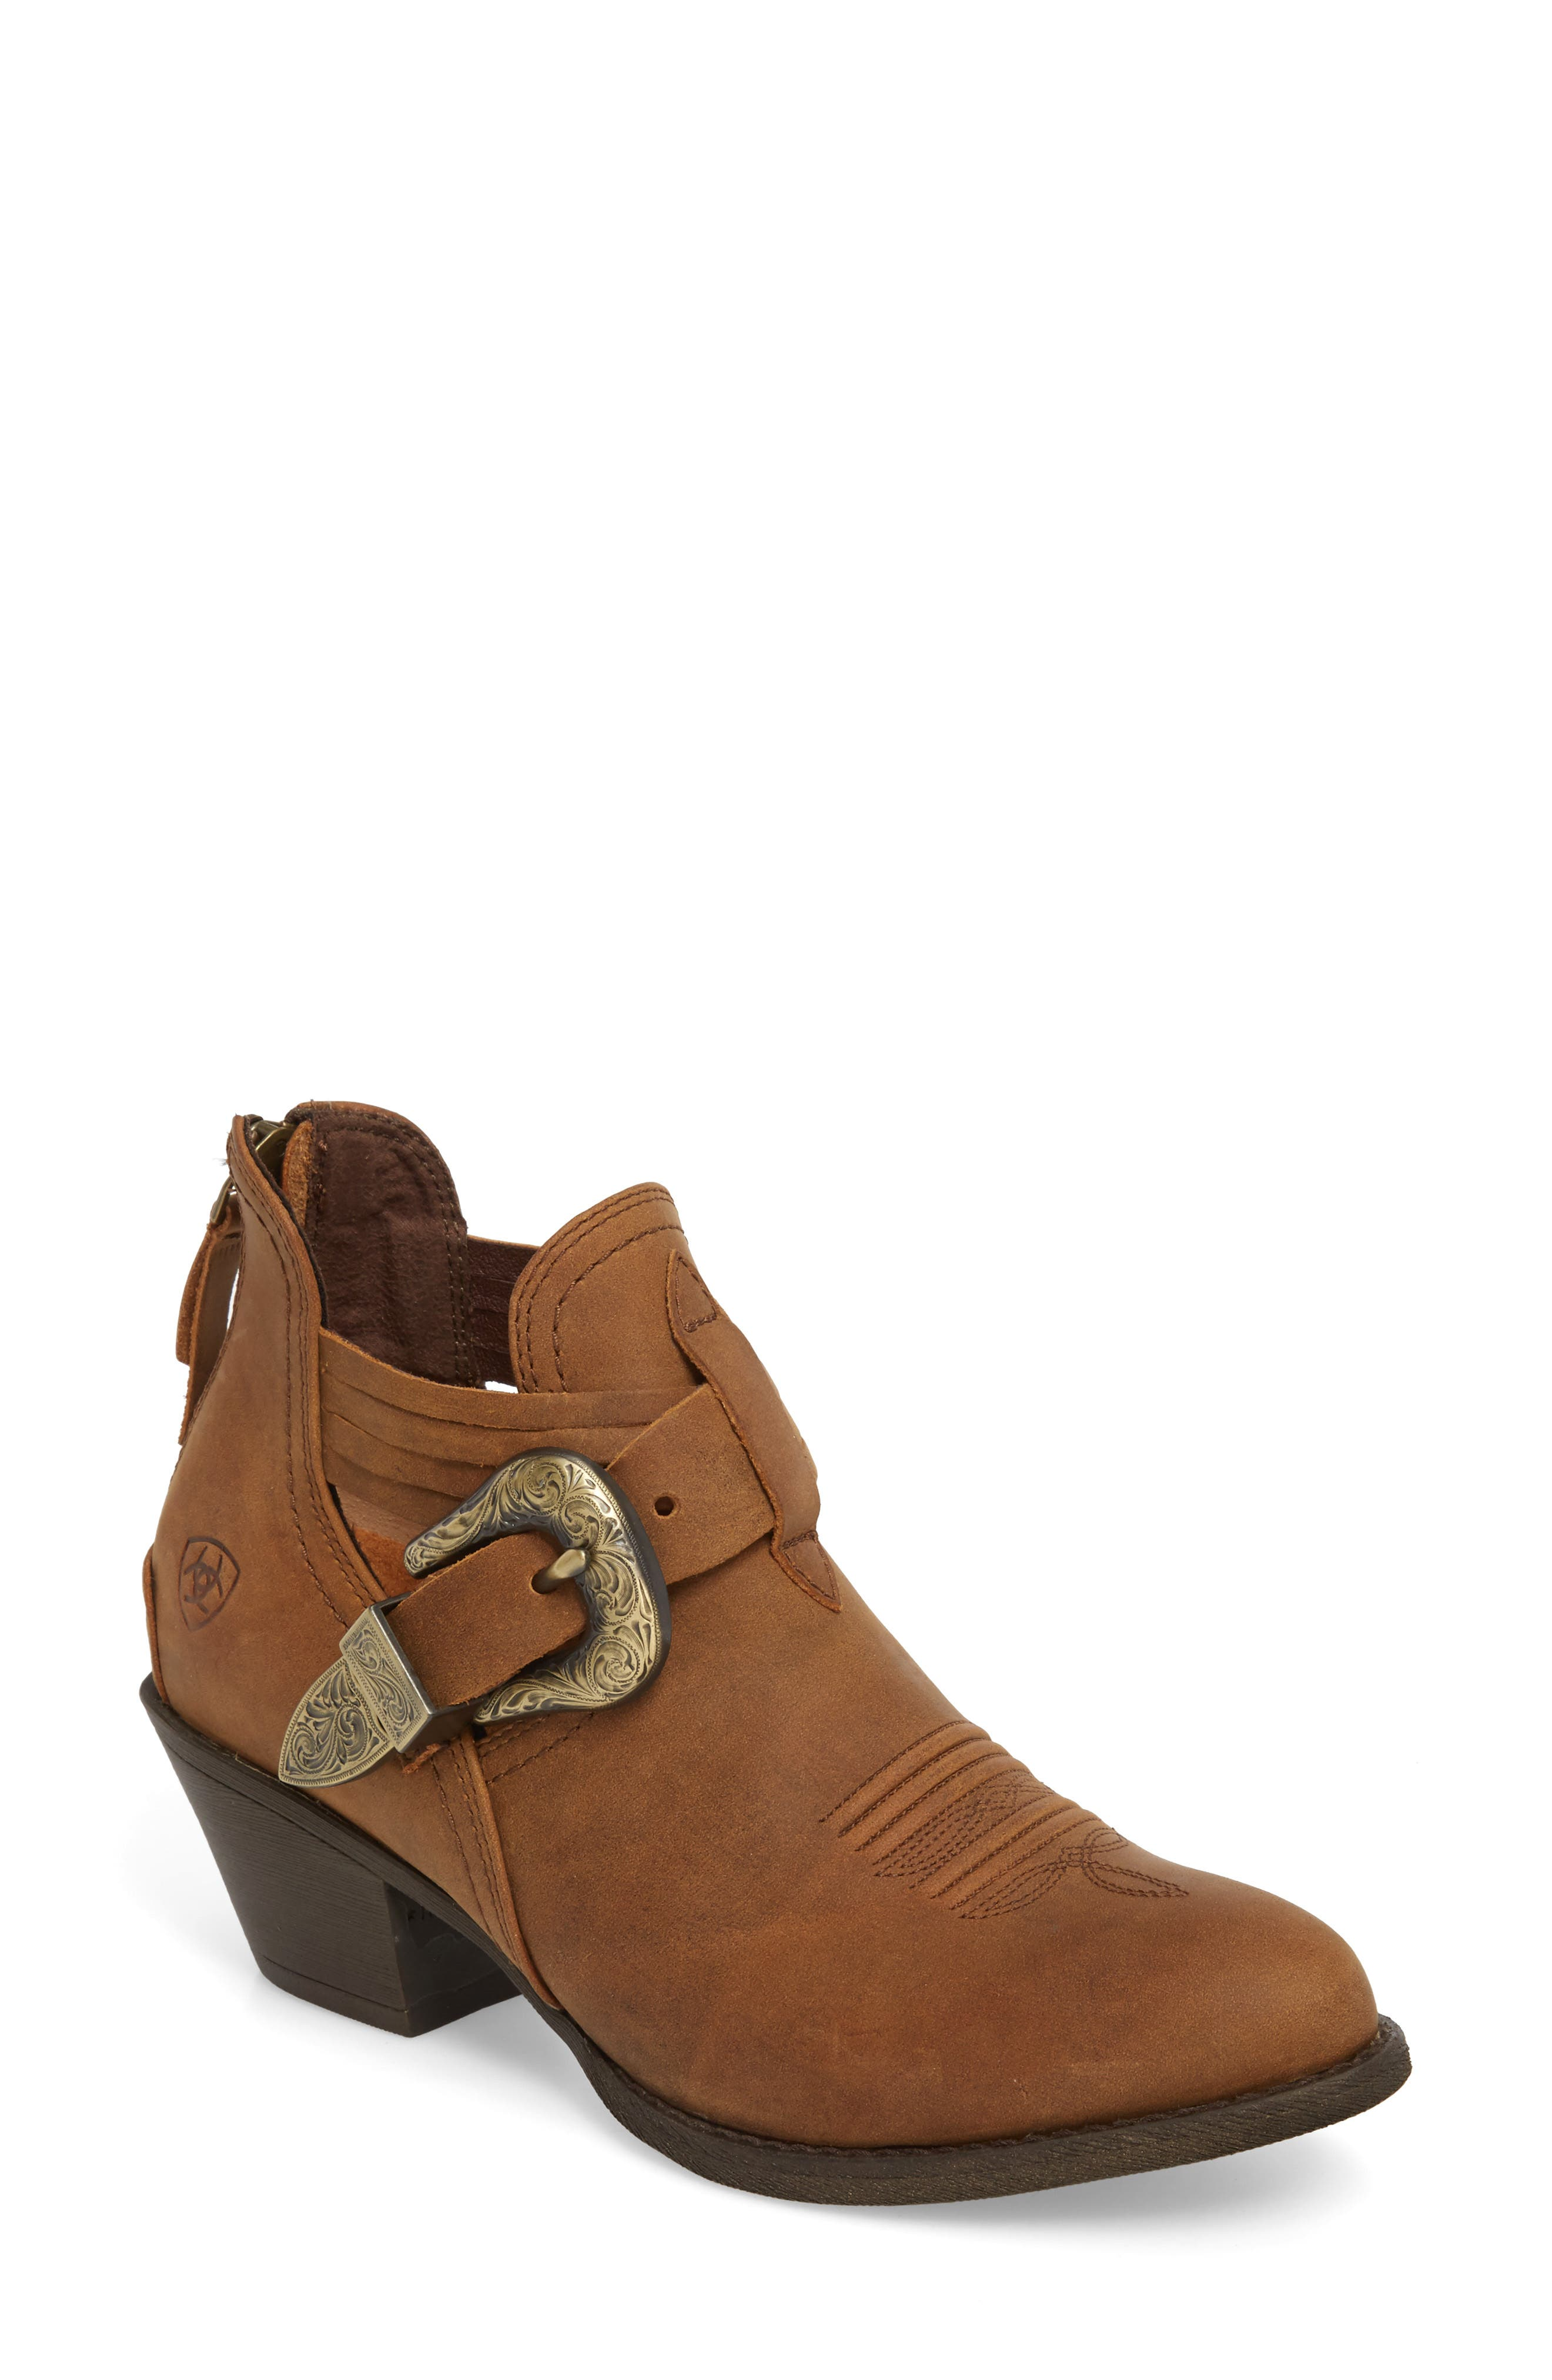 ARIAT Dulce Bootie in Tawny Leather